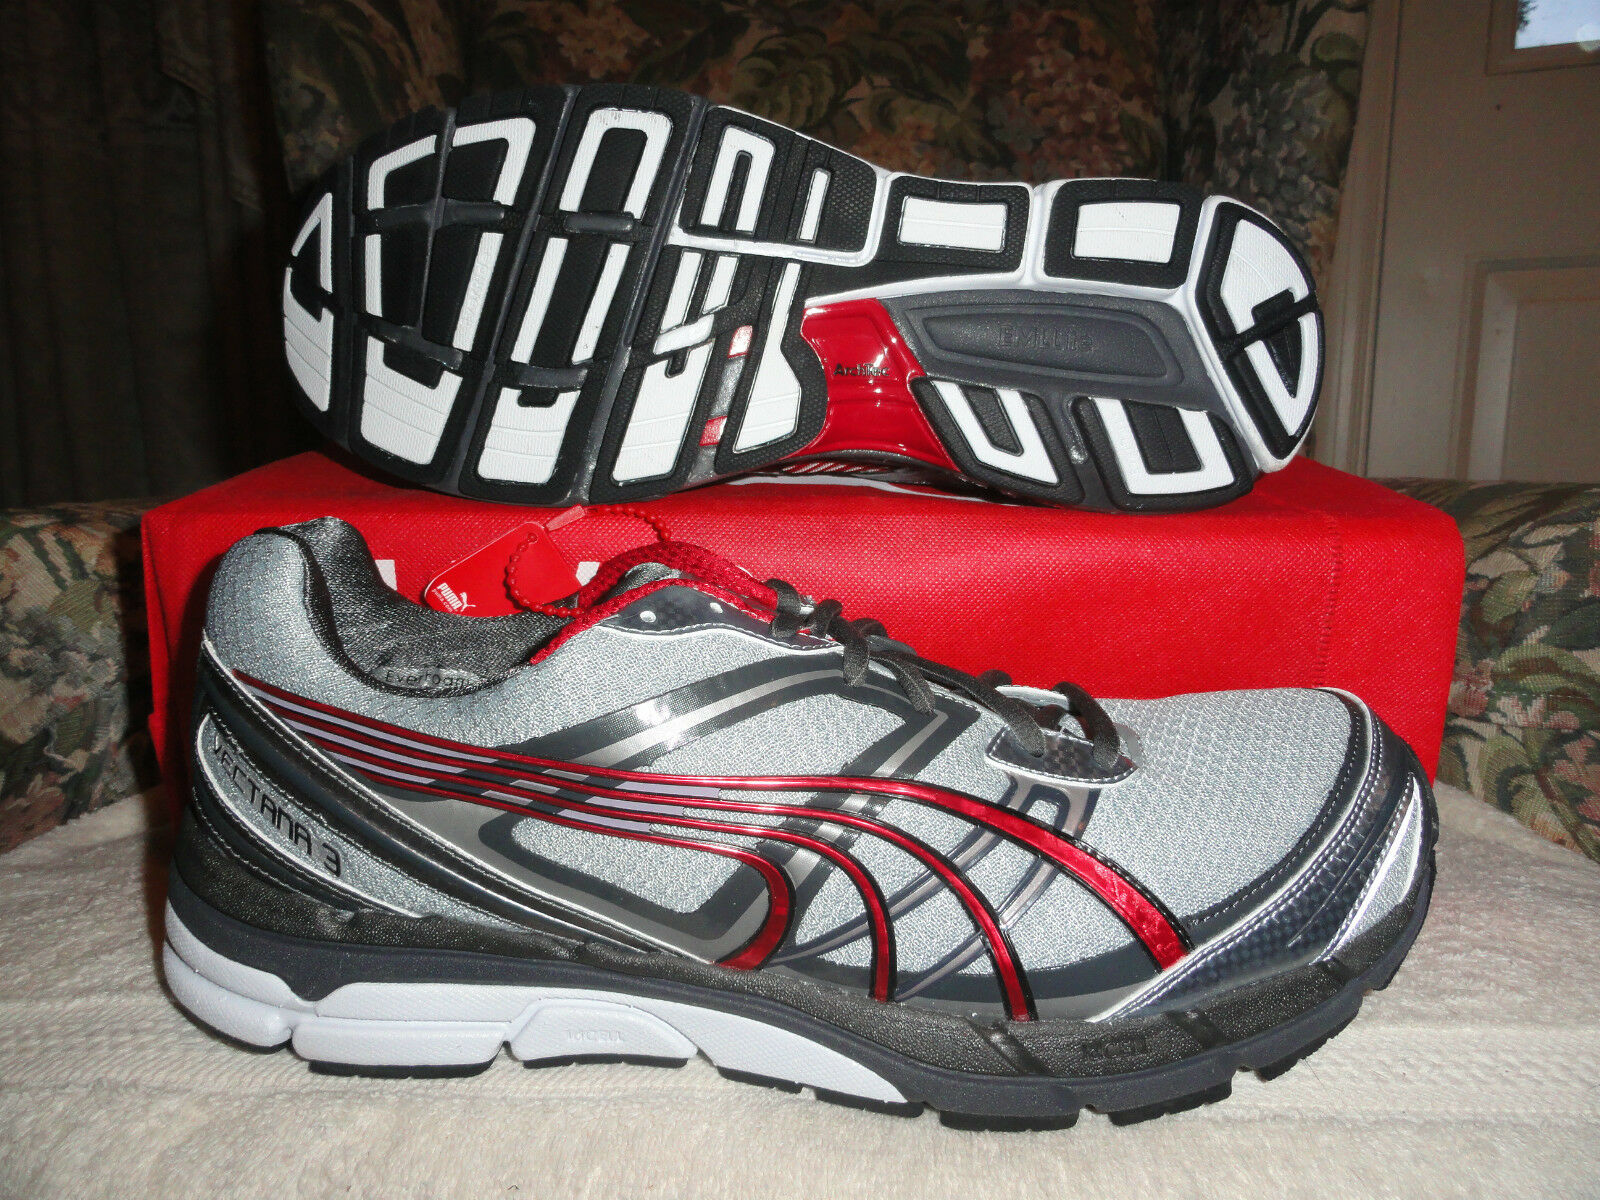 PUMA Complete Vectana 3 Running Sneakers 7.5 Price reduction